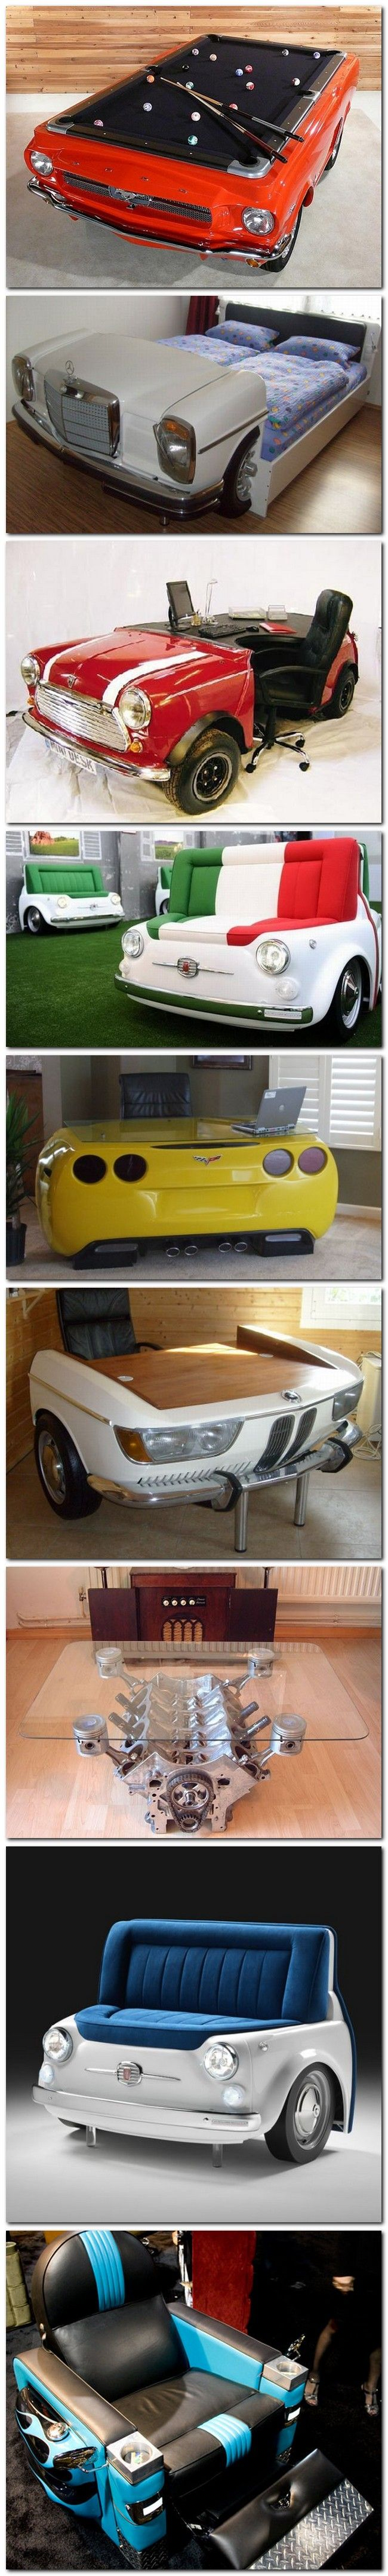 332 best Automotive Furniture and Such images on Pinterest ...